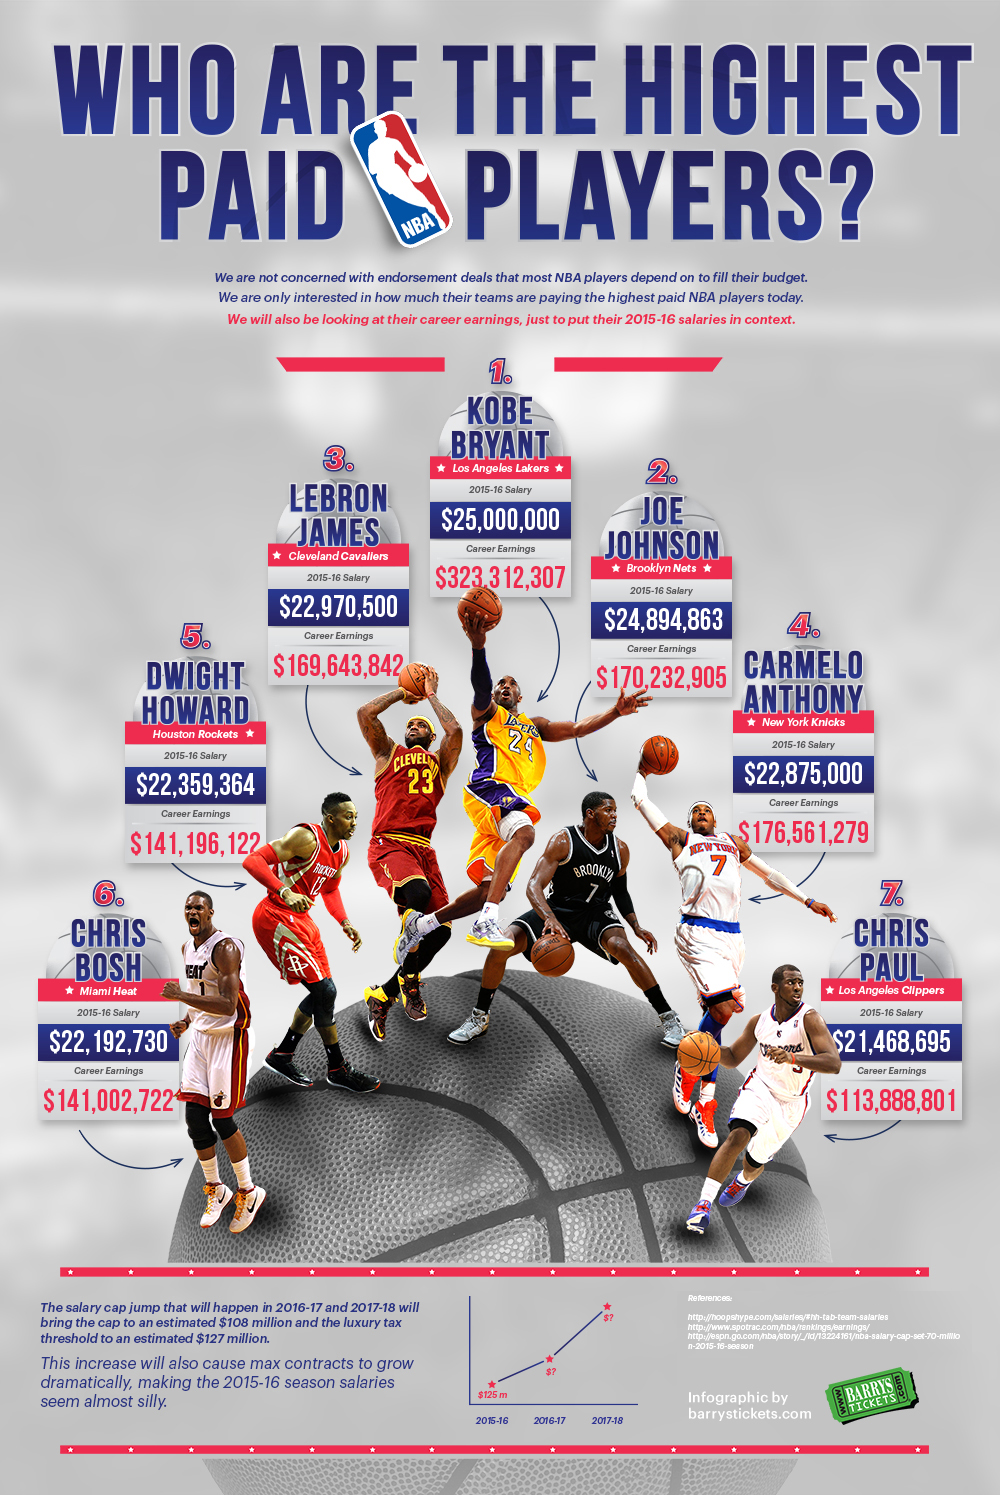 The Highest Paid NBA Players